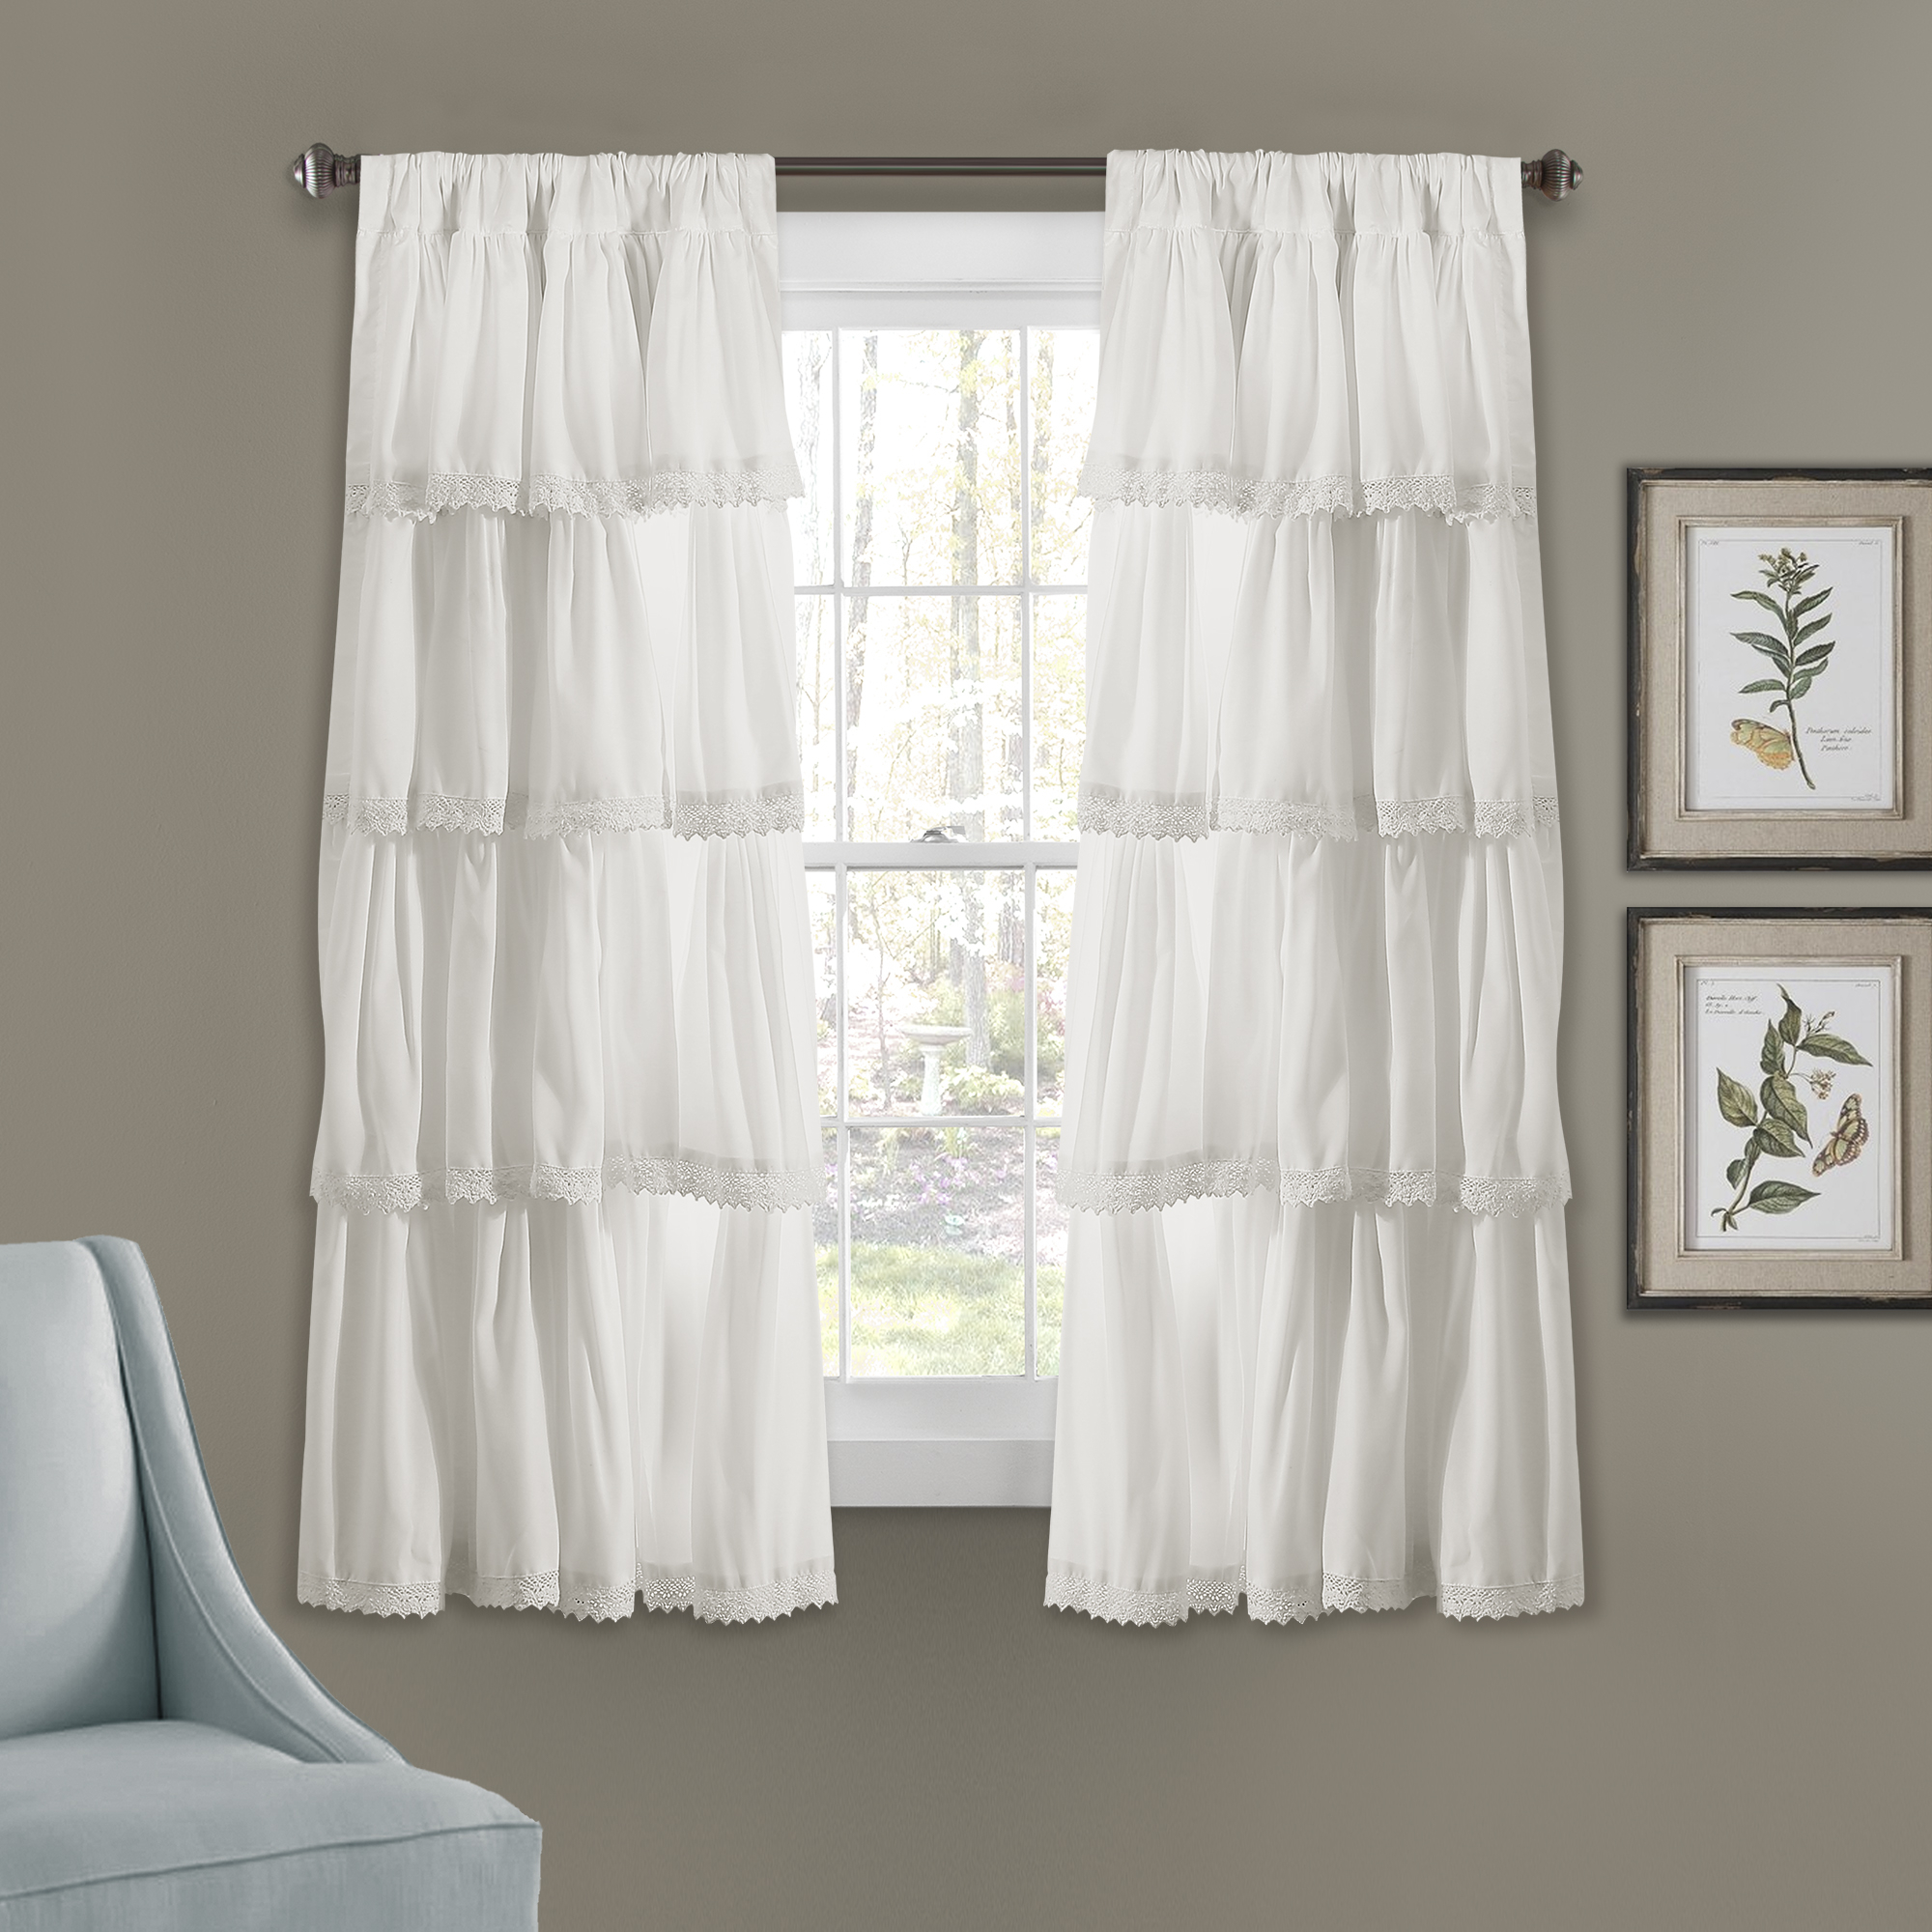 Ella Lace Ruffle Window Curtain Panels White Set 32x45 In Ella Window Curtain Panels (View 4 of 20)